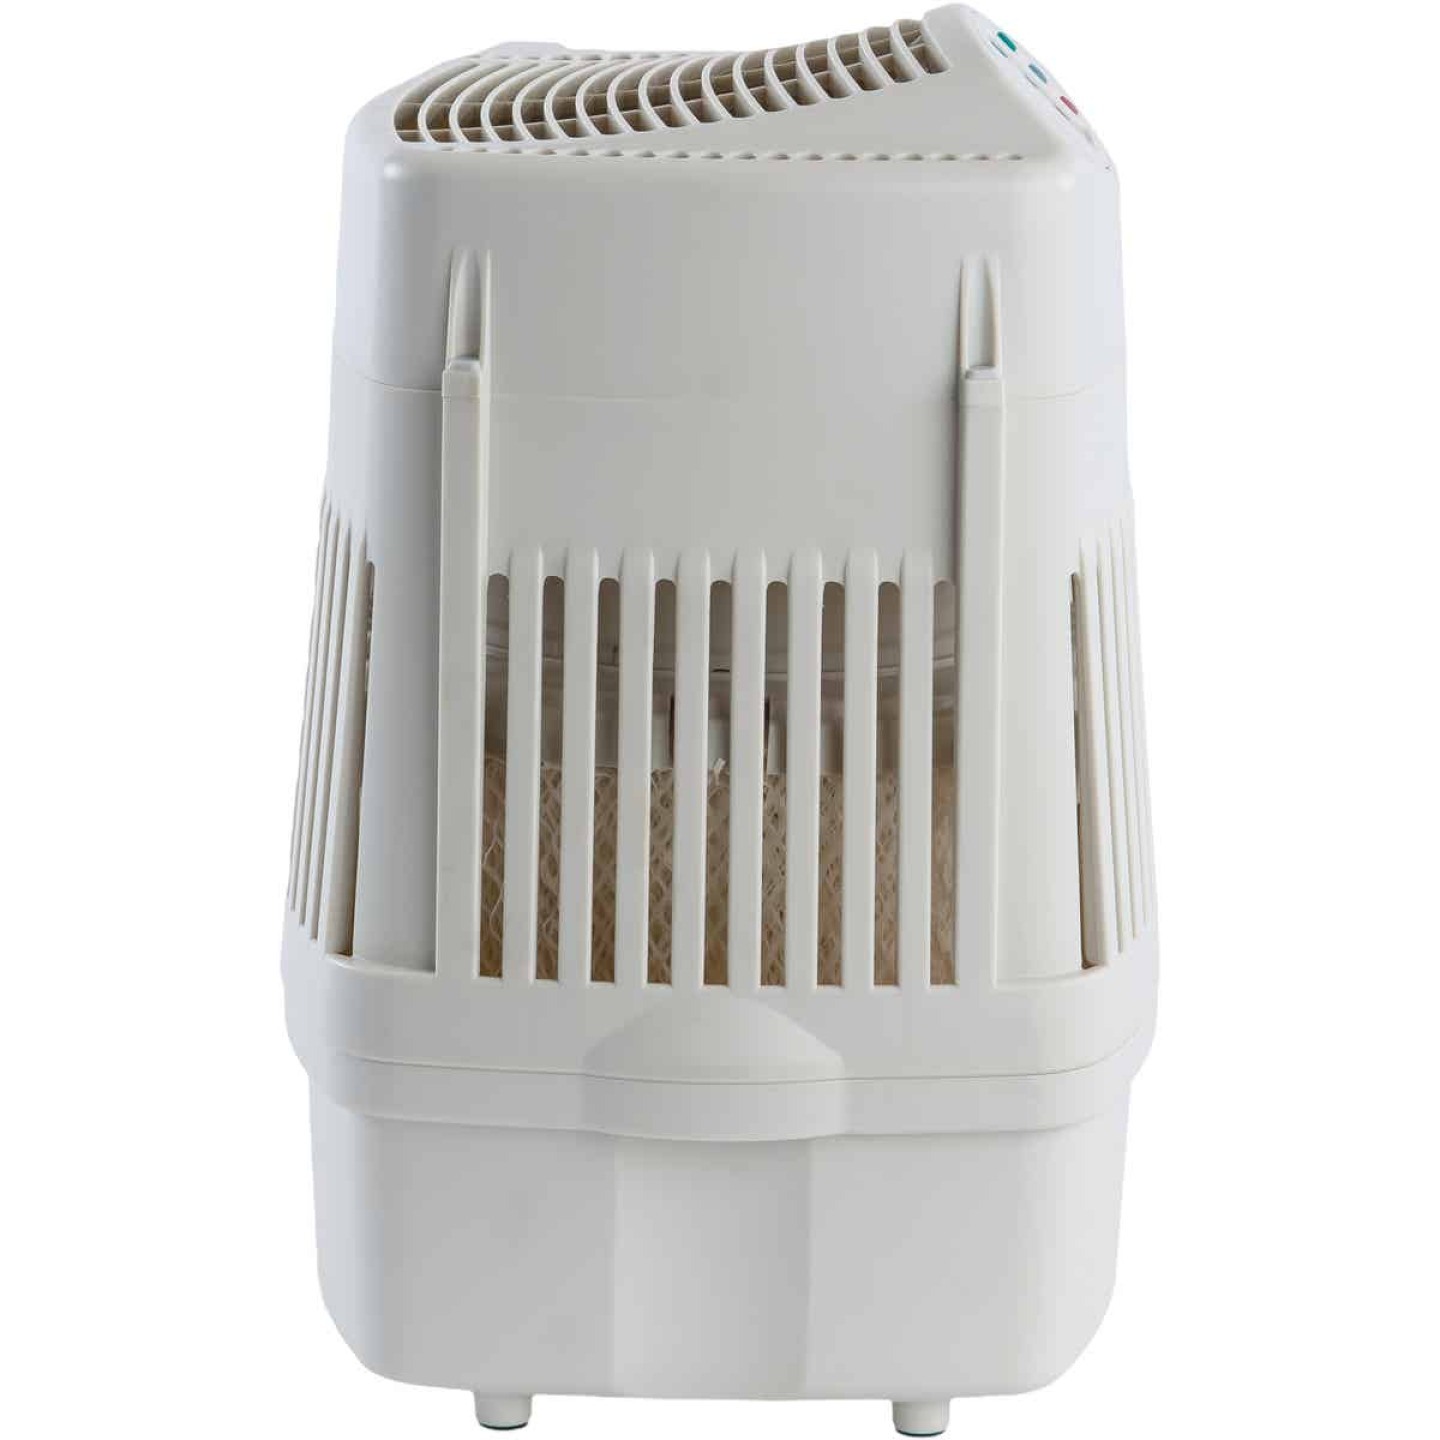 AirCare 2-1/2 Gal. Capacity 2600 Sq. Ft. Mini Console Evaporative Humidifier Image 3